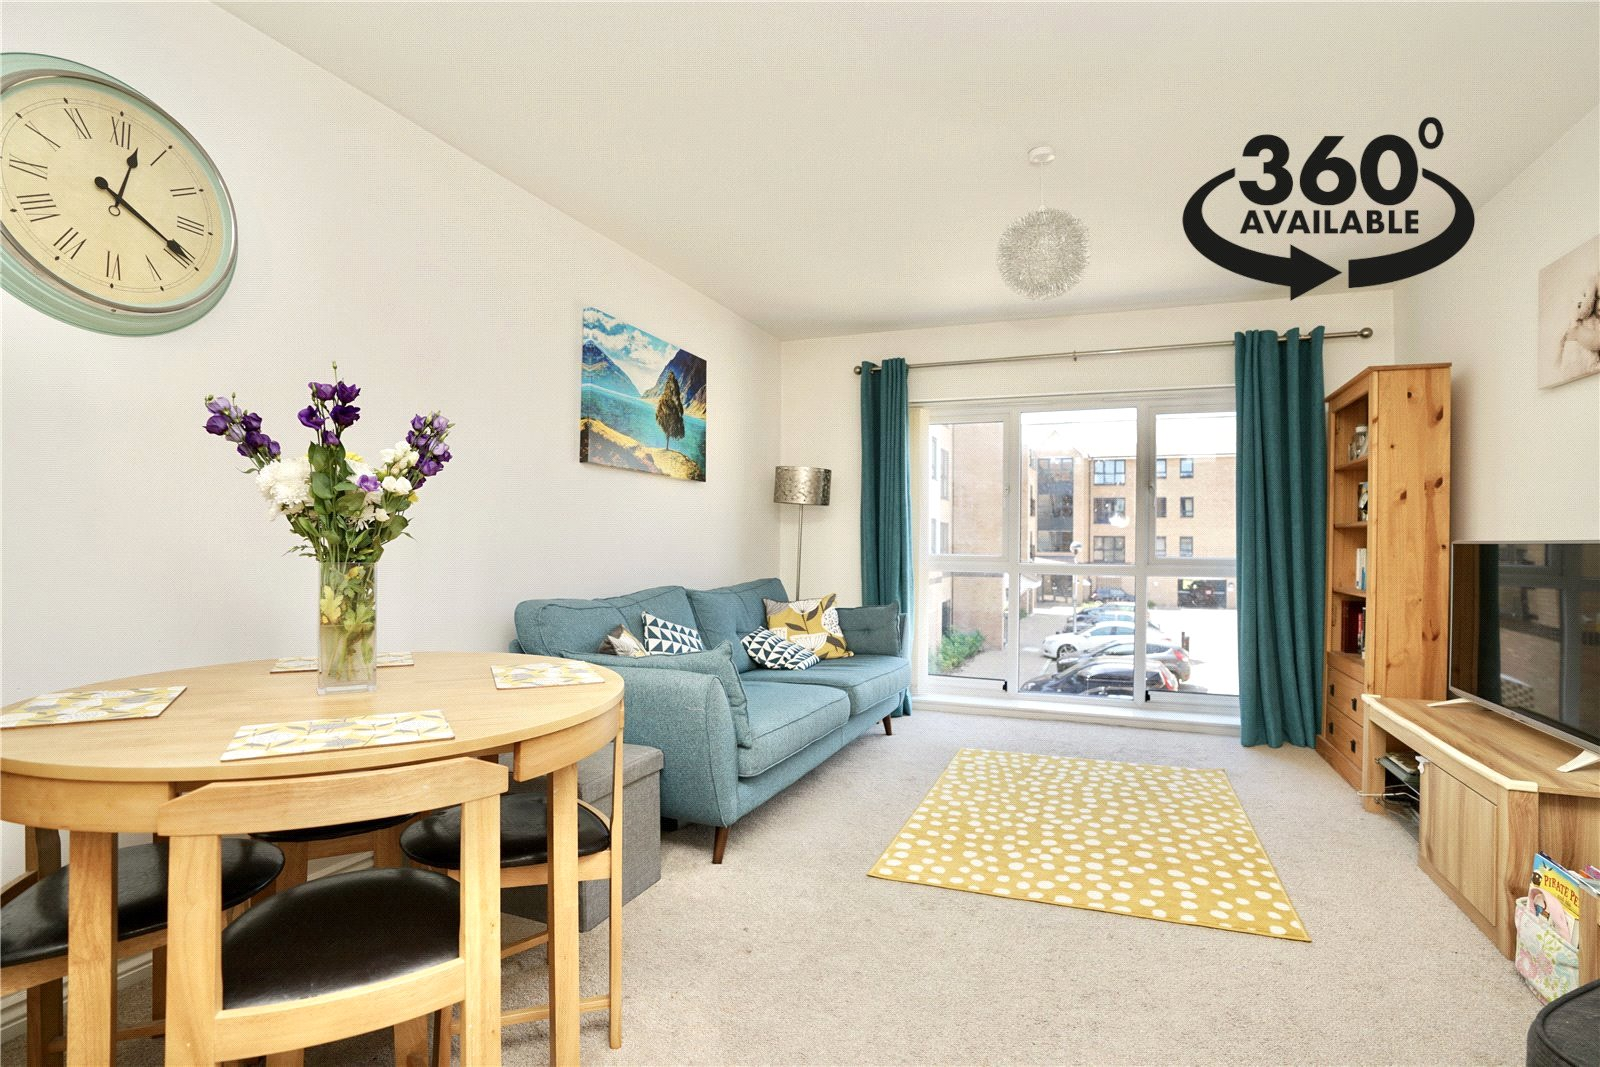 2 bed apartment for sale in Little Paxton, Marbled White Court, PE19 6SJ 0